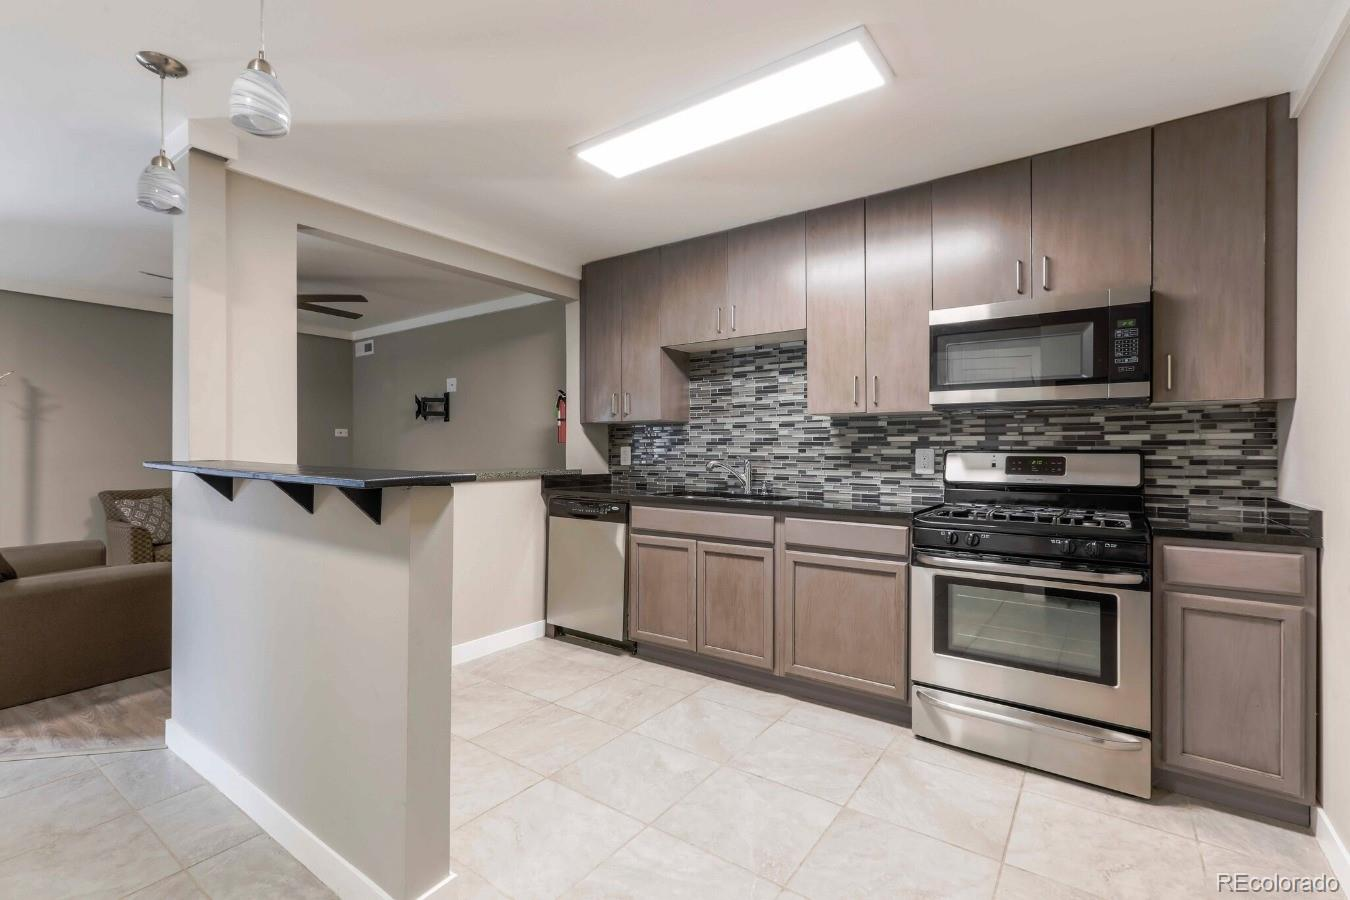 2951 91st, Federal Heights, CO